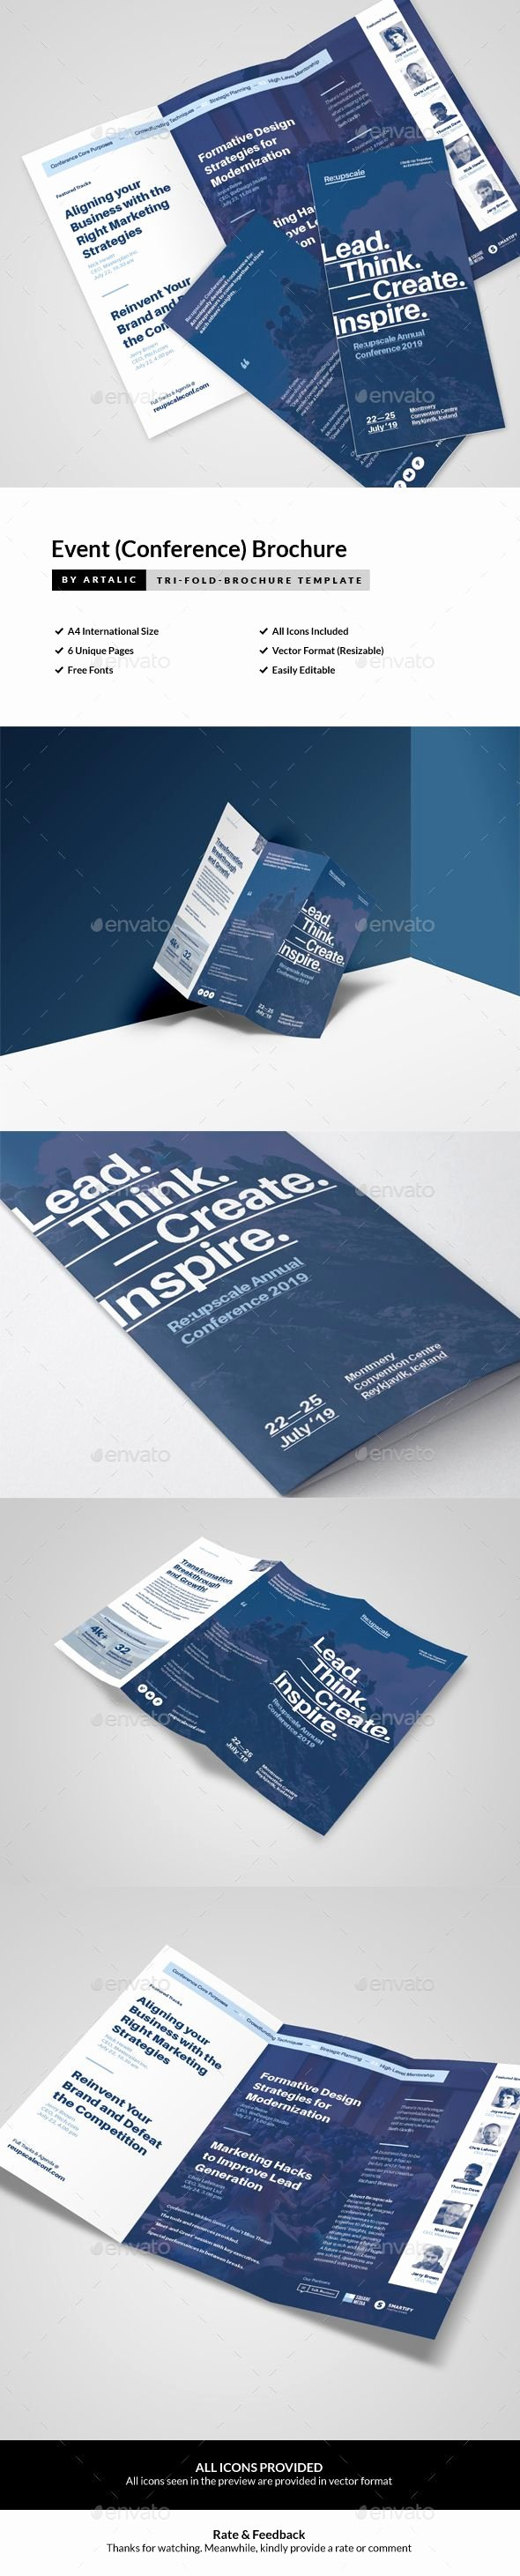 Conference Program Booklet Template Awesome Best 25 Leaflet Template Ideas On Pinterest